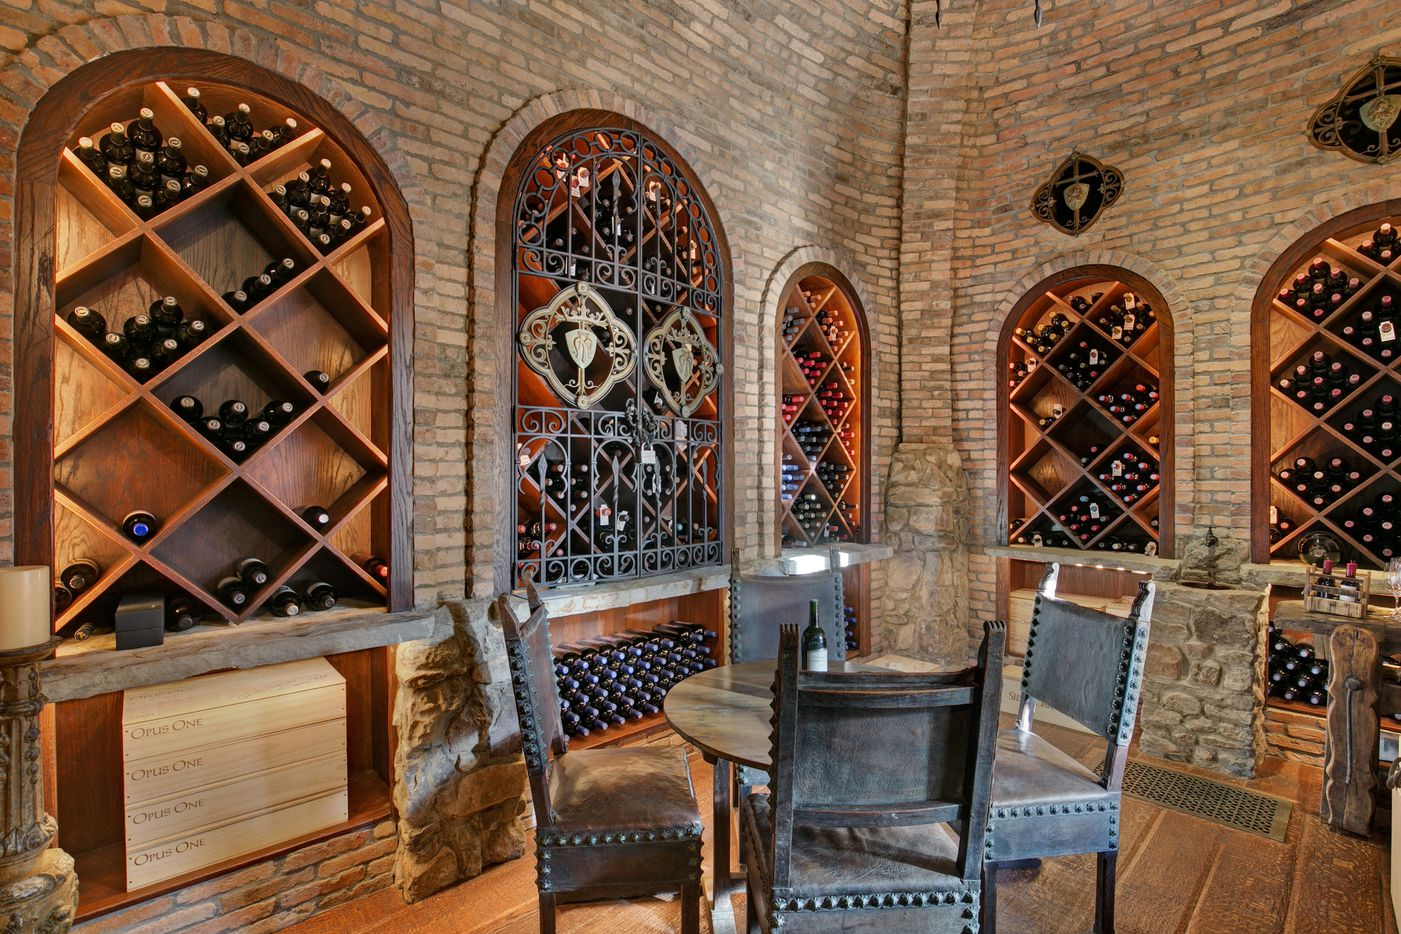 The wine grotto in the Strait Lane house.